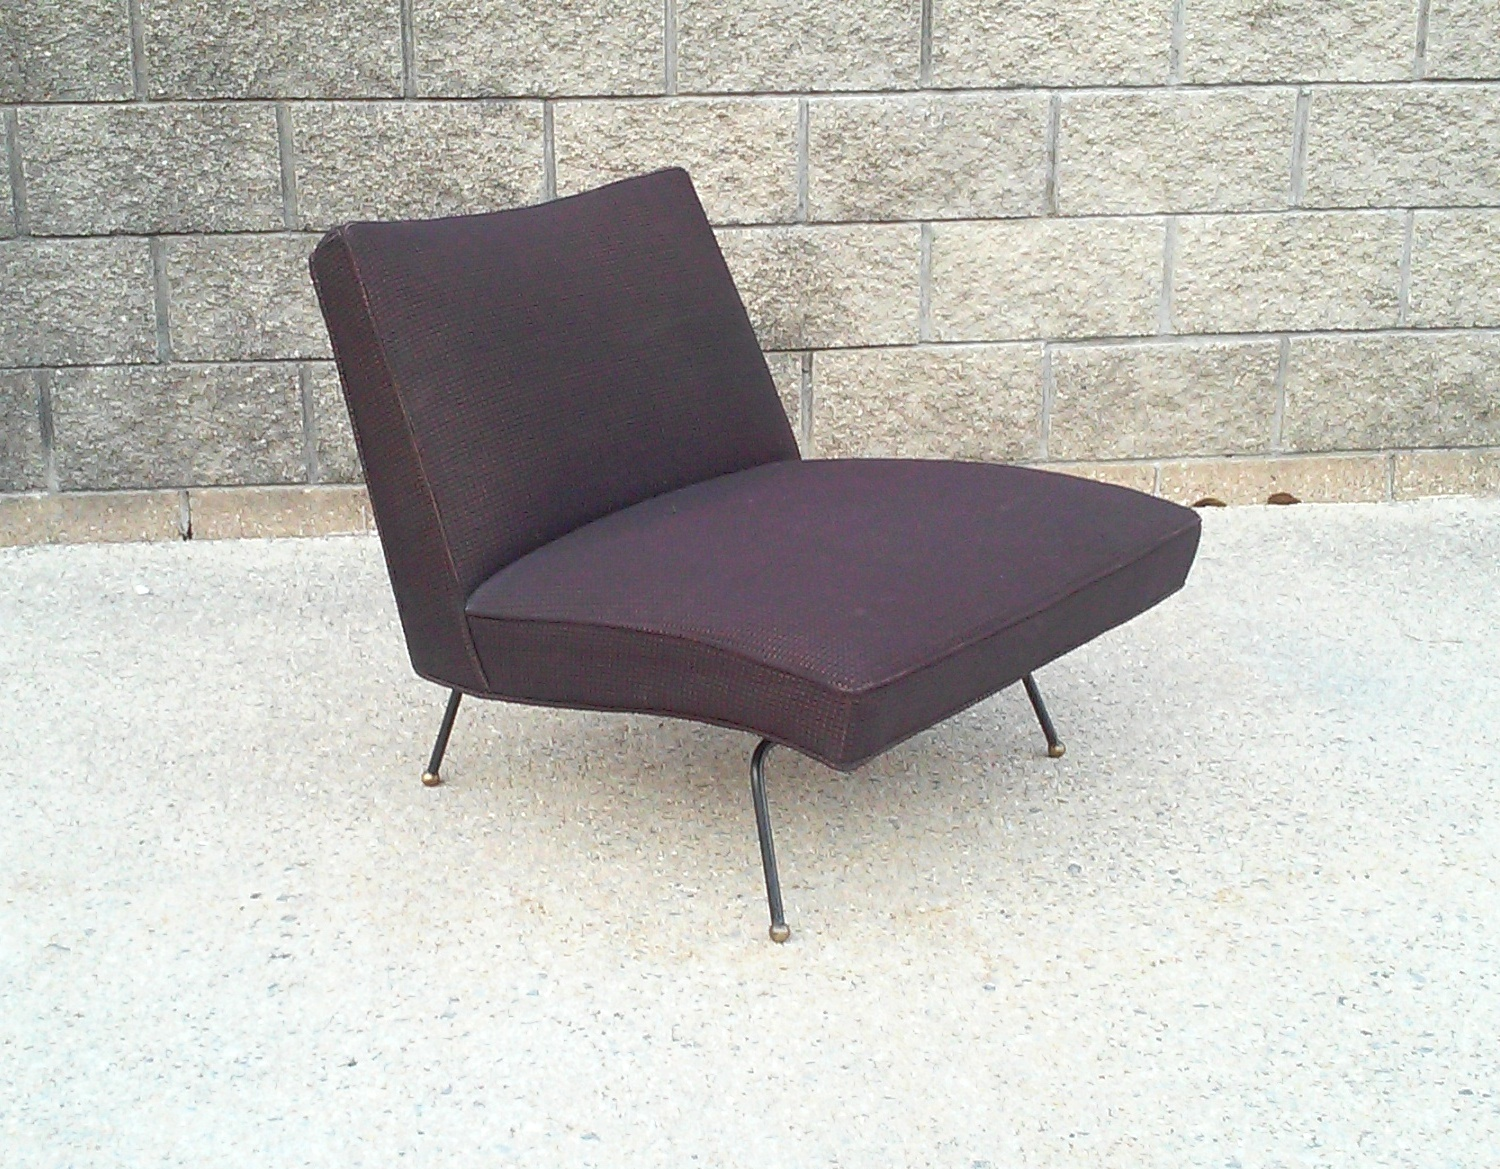 Sensational Baughman Style Mid Century Low Slung Armless And 50 Similar Andrewgaddart Wooden Chair Designs For Living Room Andrewgaddartcom